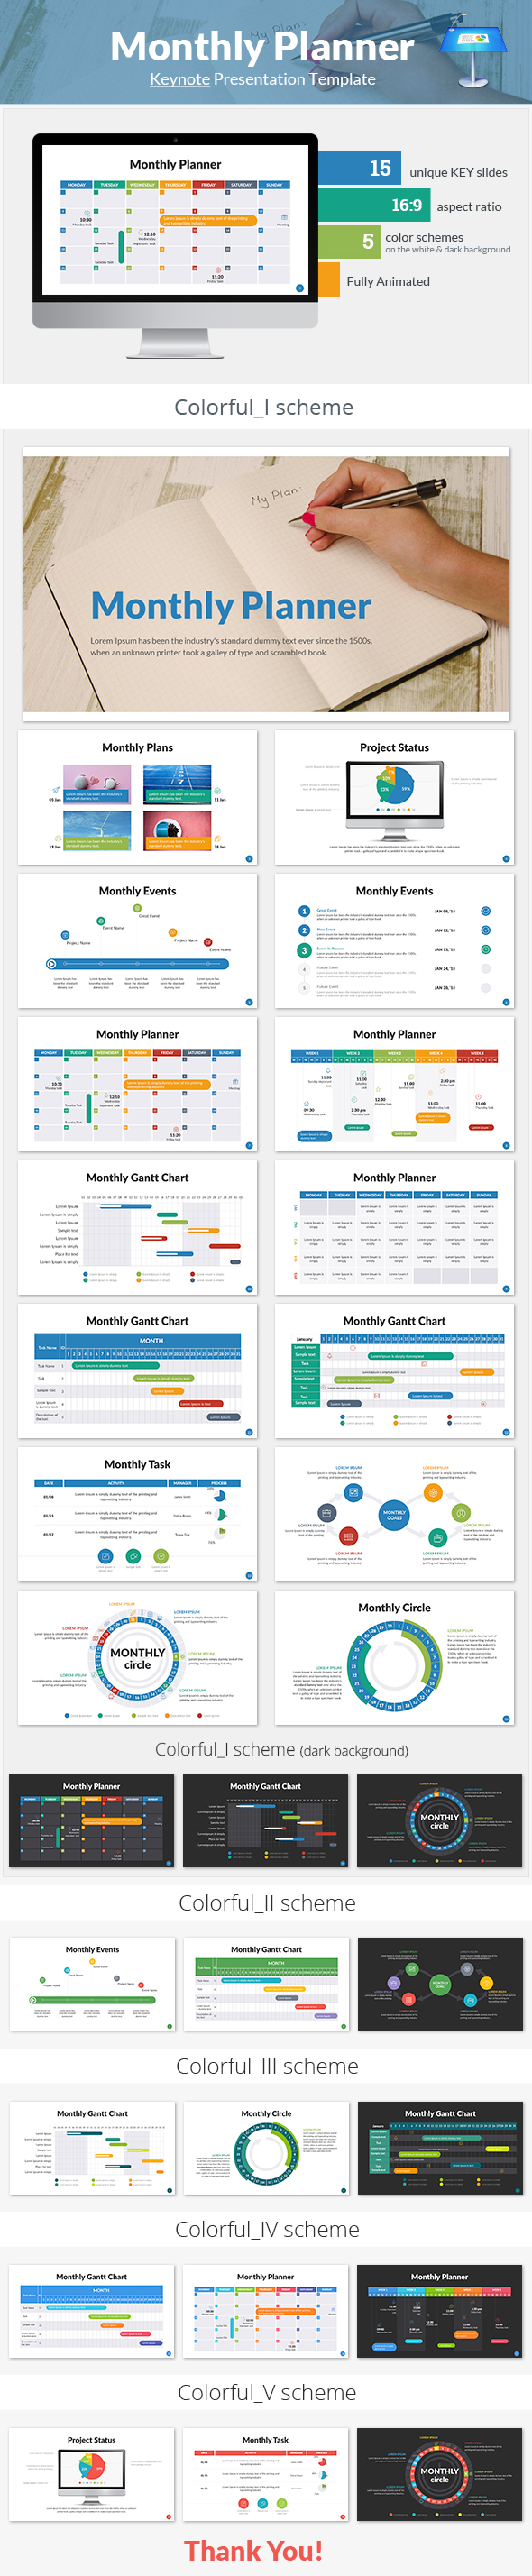 Monthly Planner Keynote Presentation Template - Keynote Templates Presentation Templates